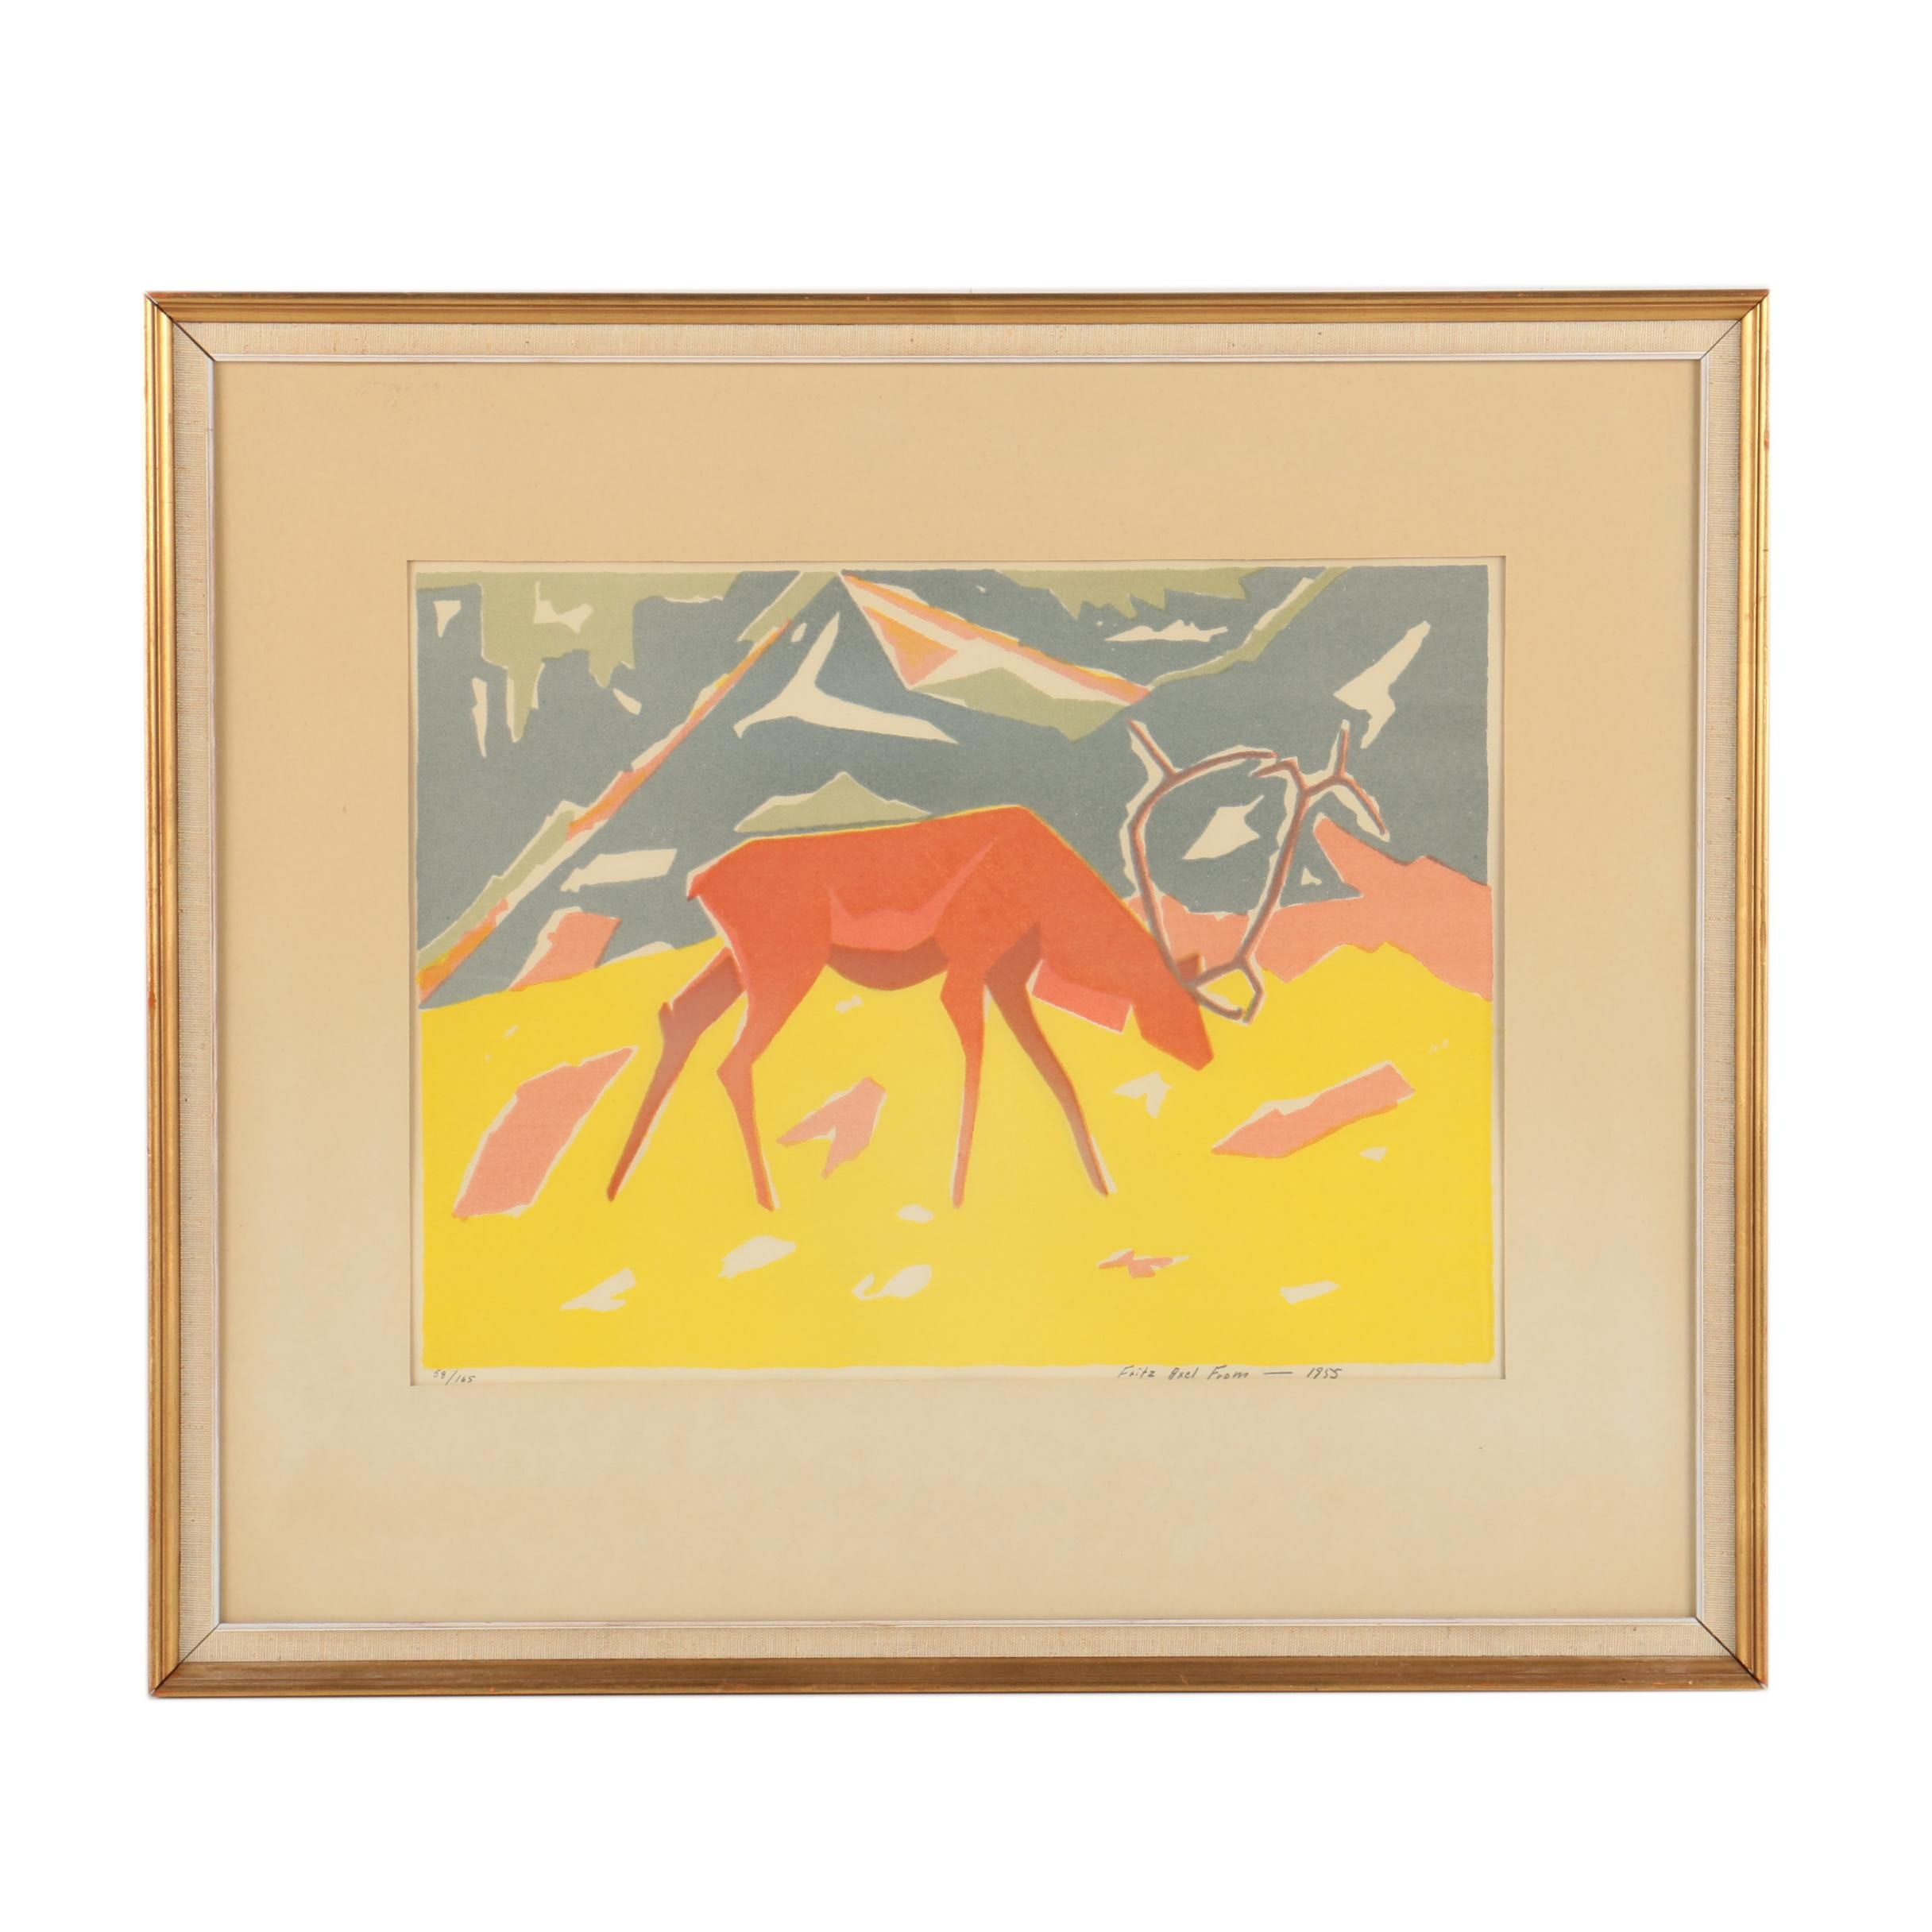 Fritz Axel From Limited Edition Color Lithograph of a Stag